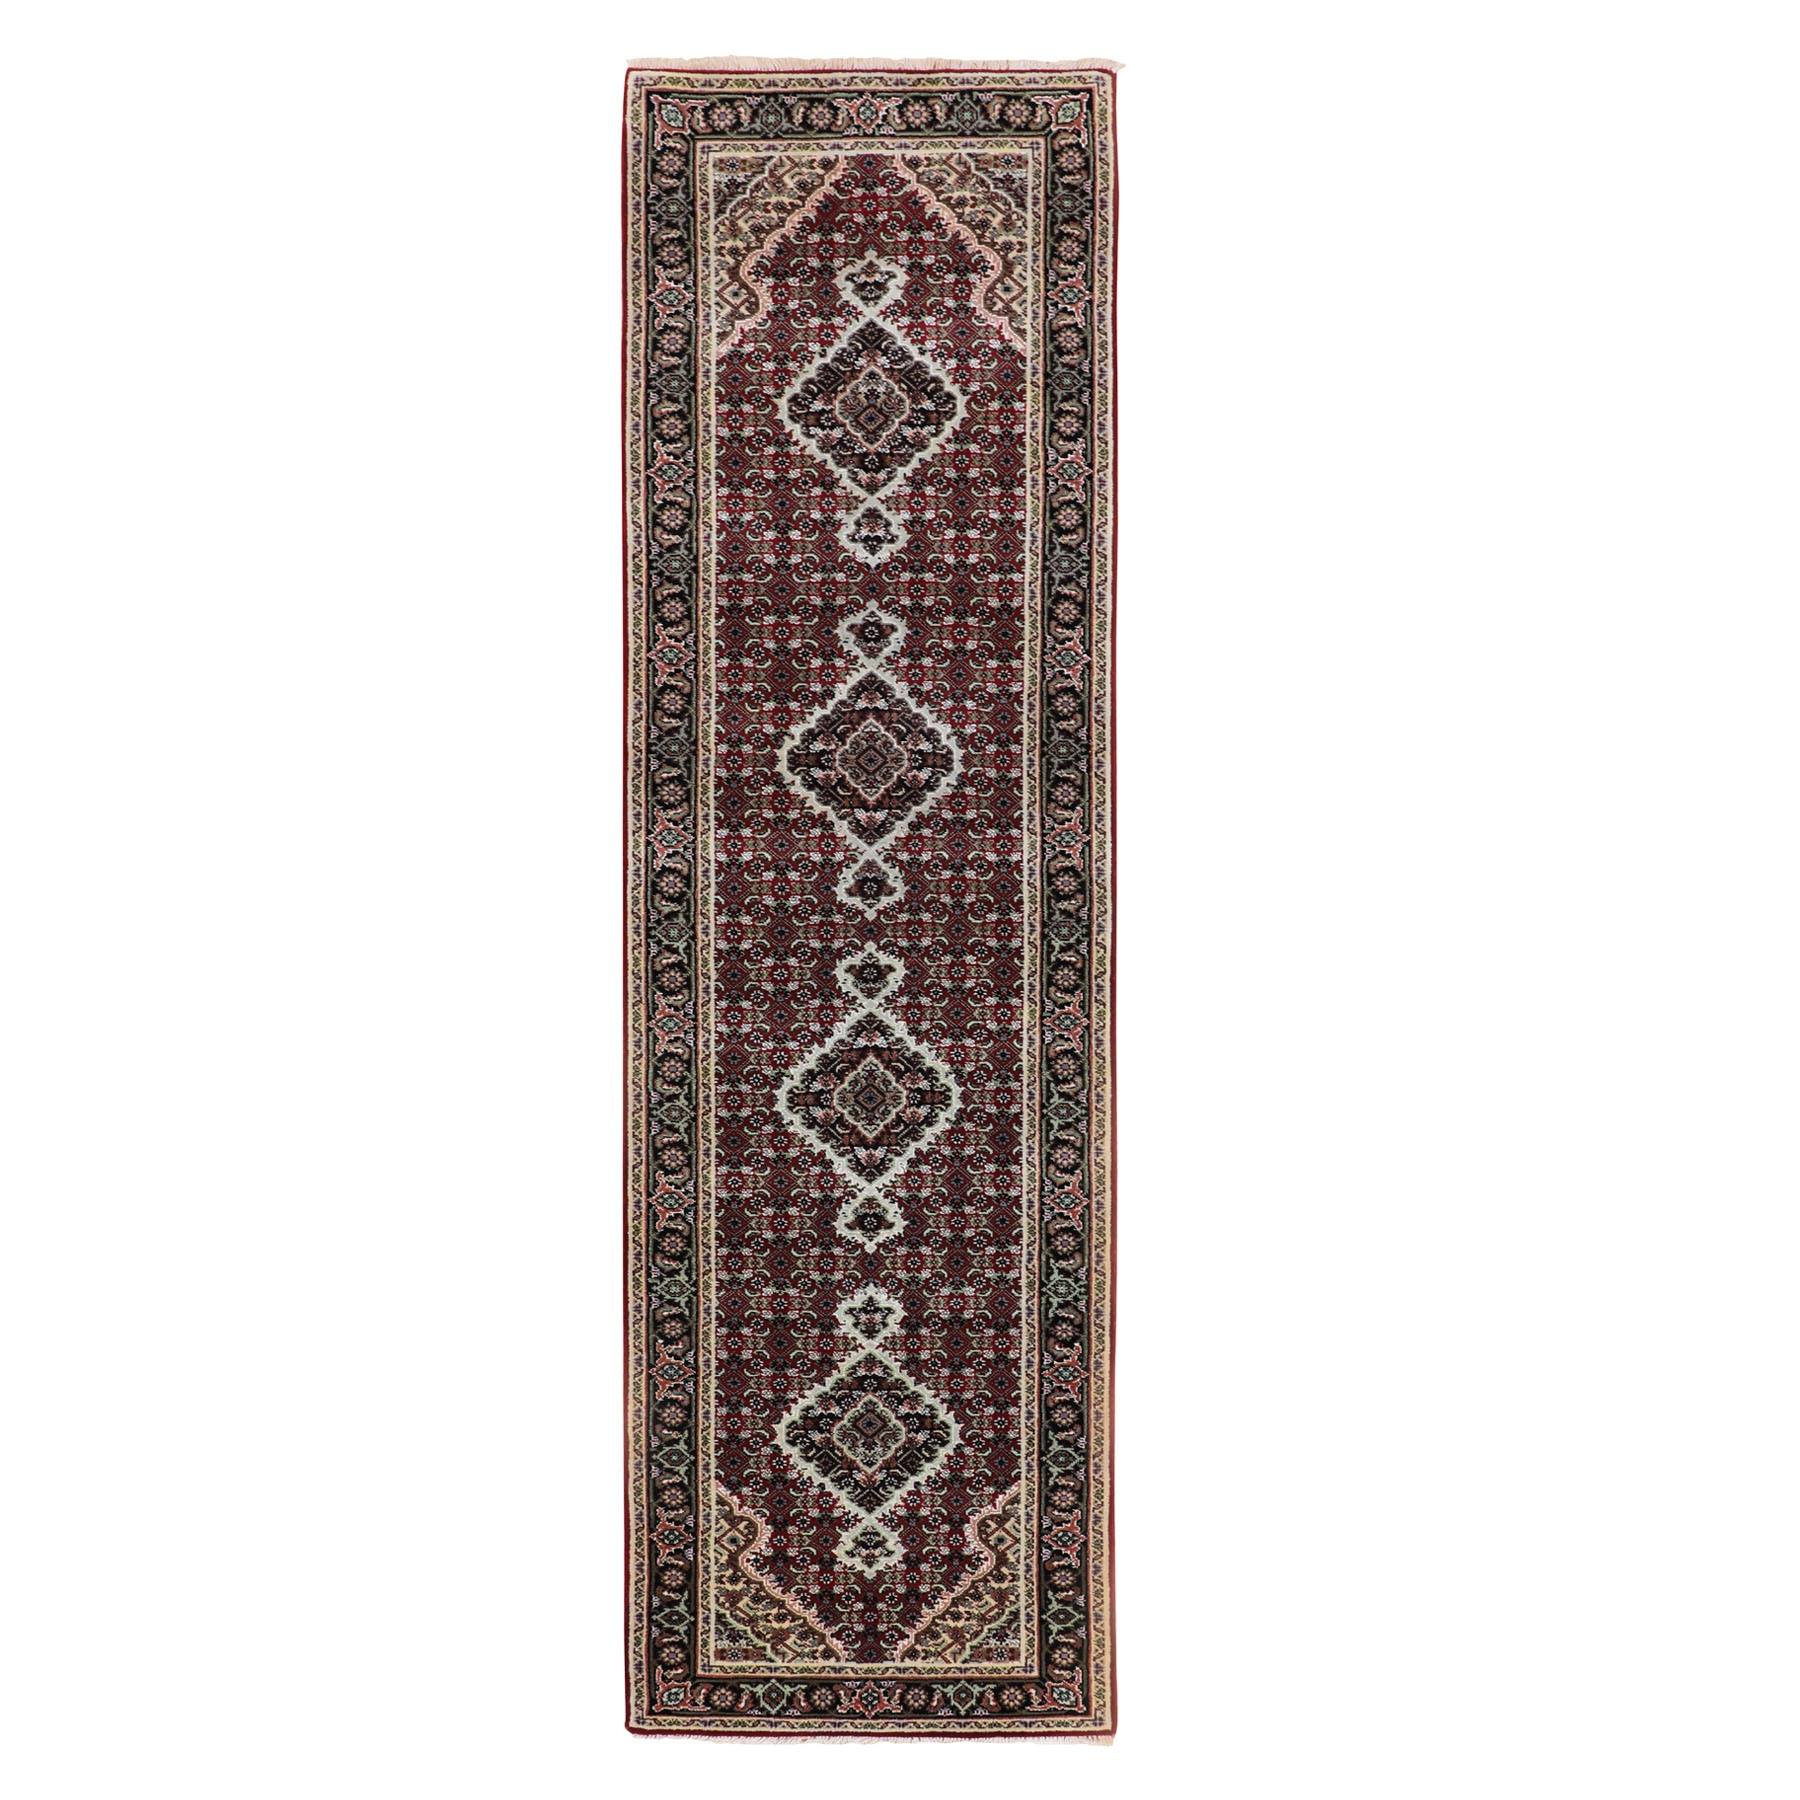 Pirniakan Collection Hand Knotted Red Rug No: 01116638